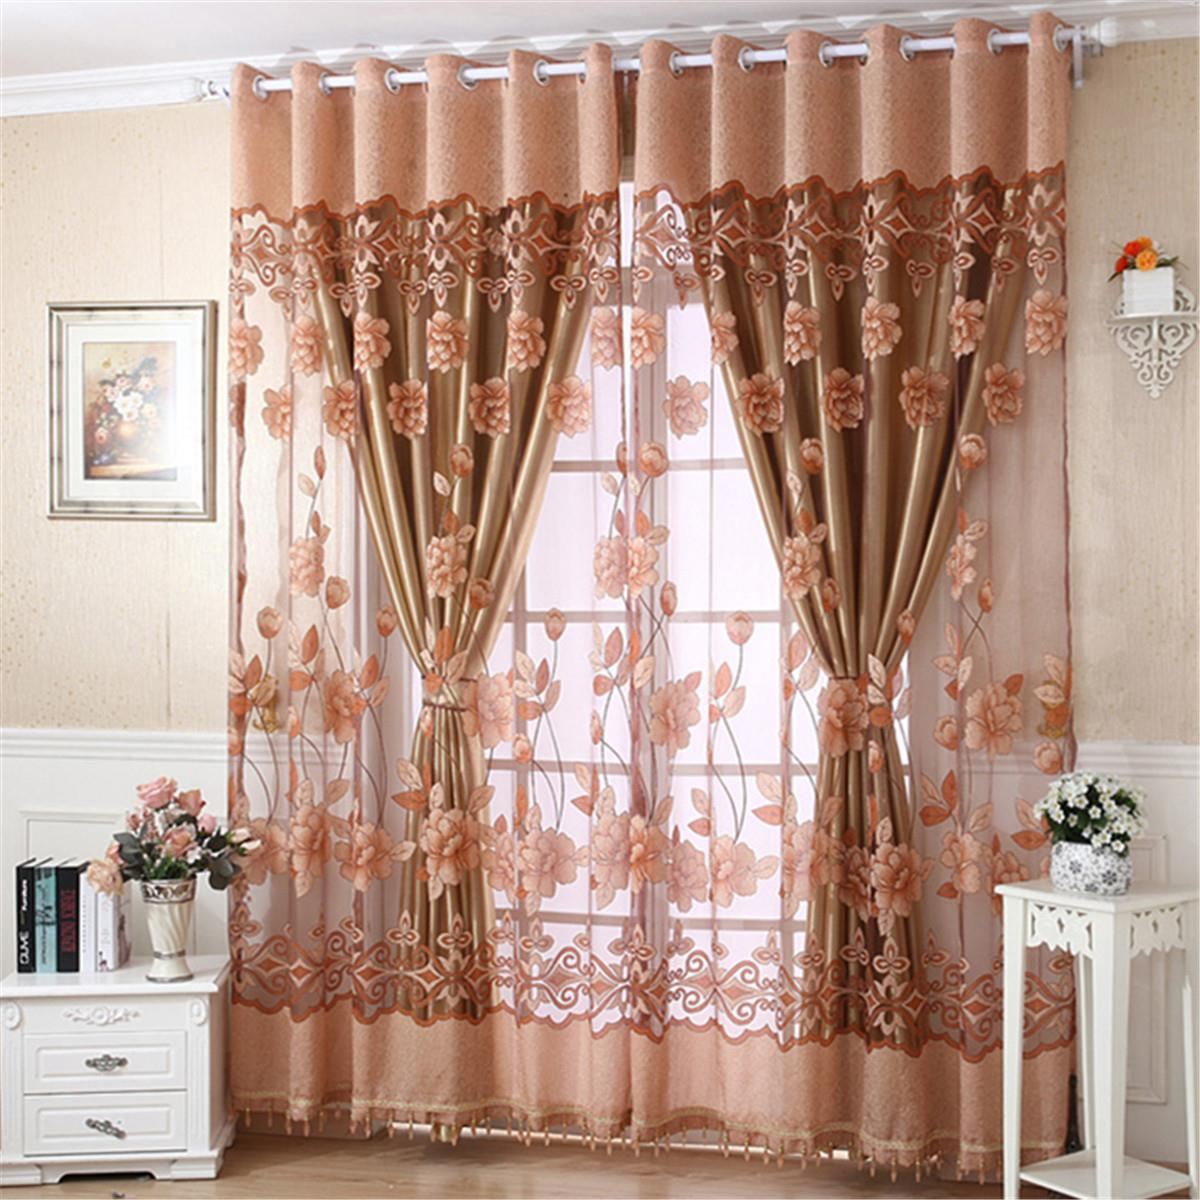 role of curtains 6